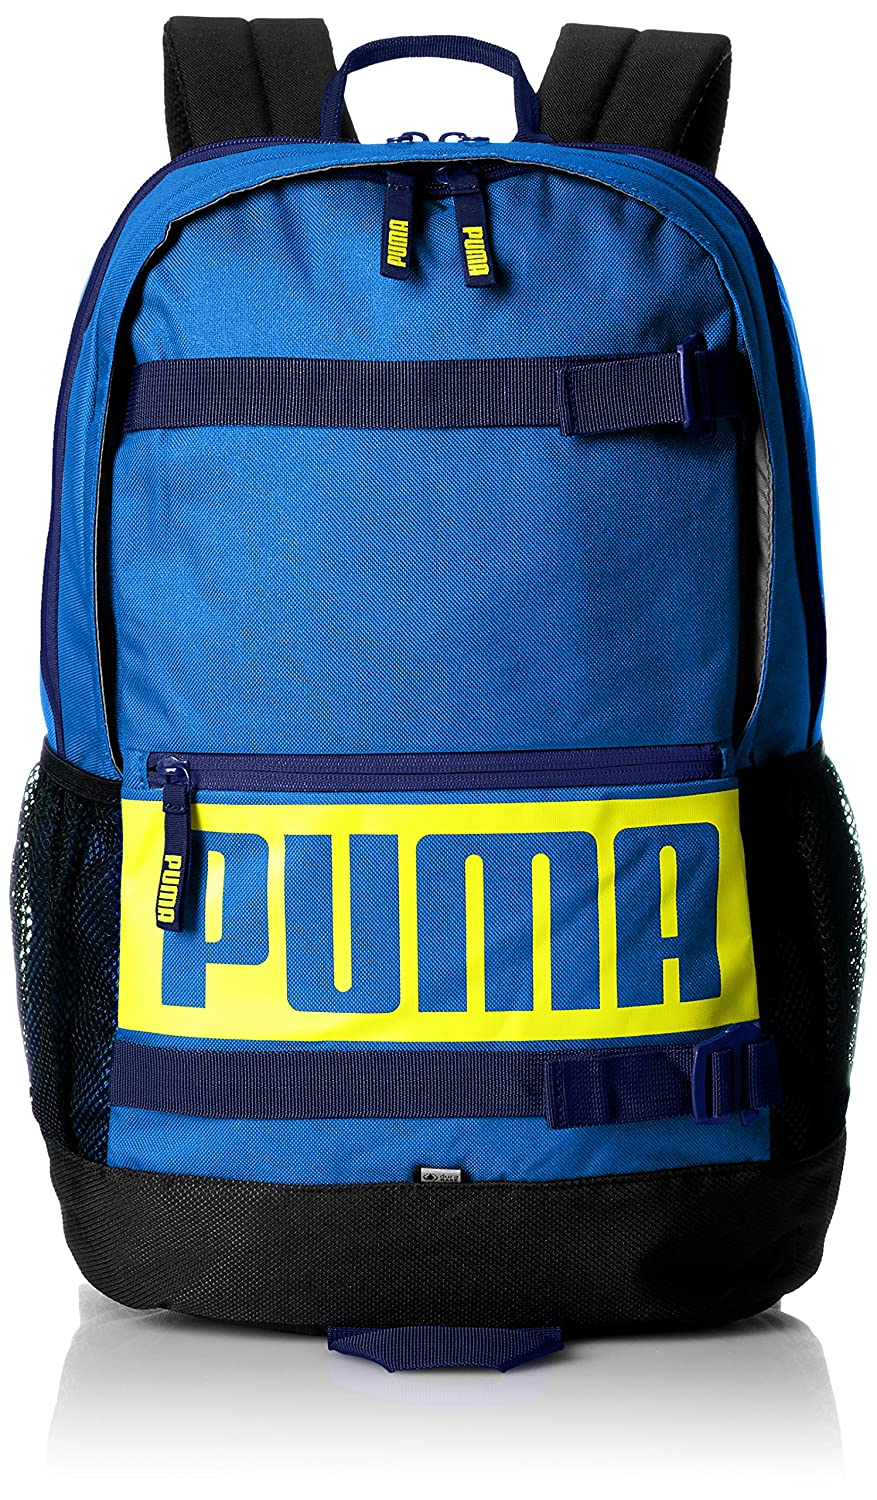 Puma 24 Ltrs Lapis Blue Laptop Backpack (7470604)  Amazon.in  Bags ... 30b4a8934af45